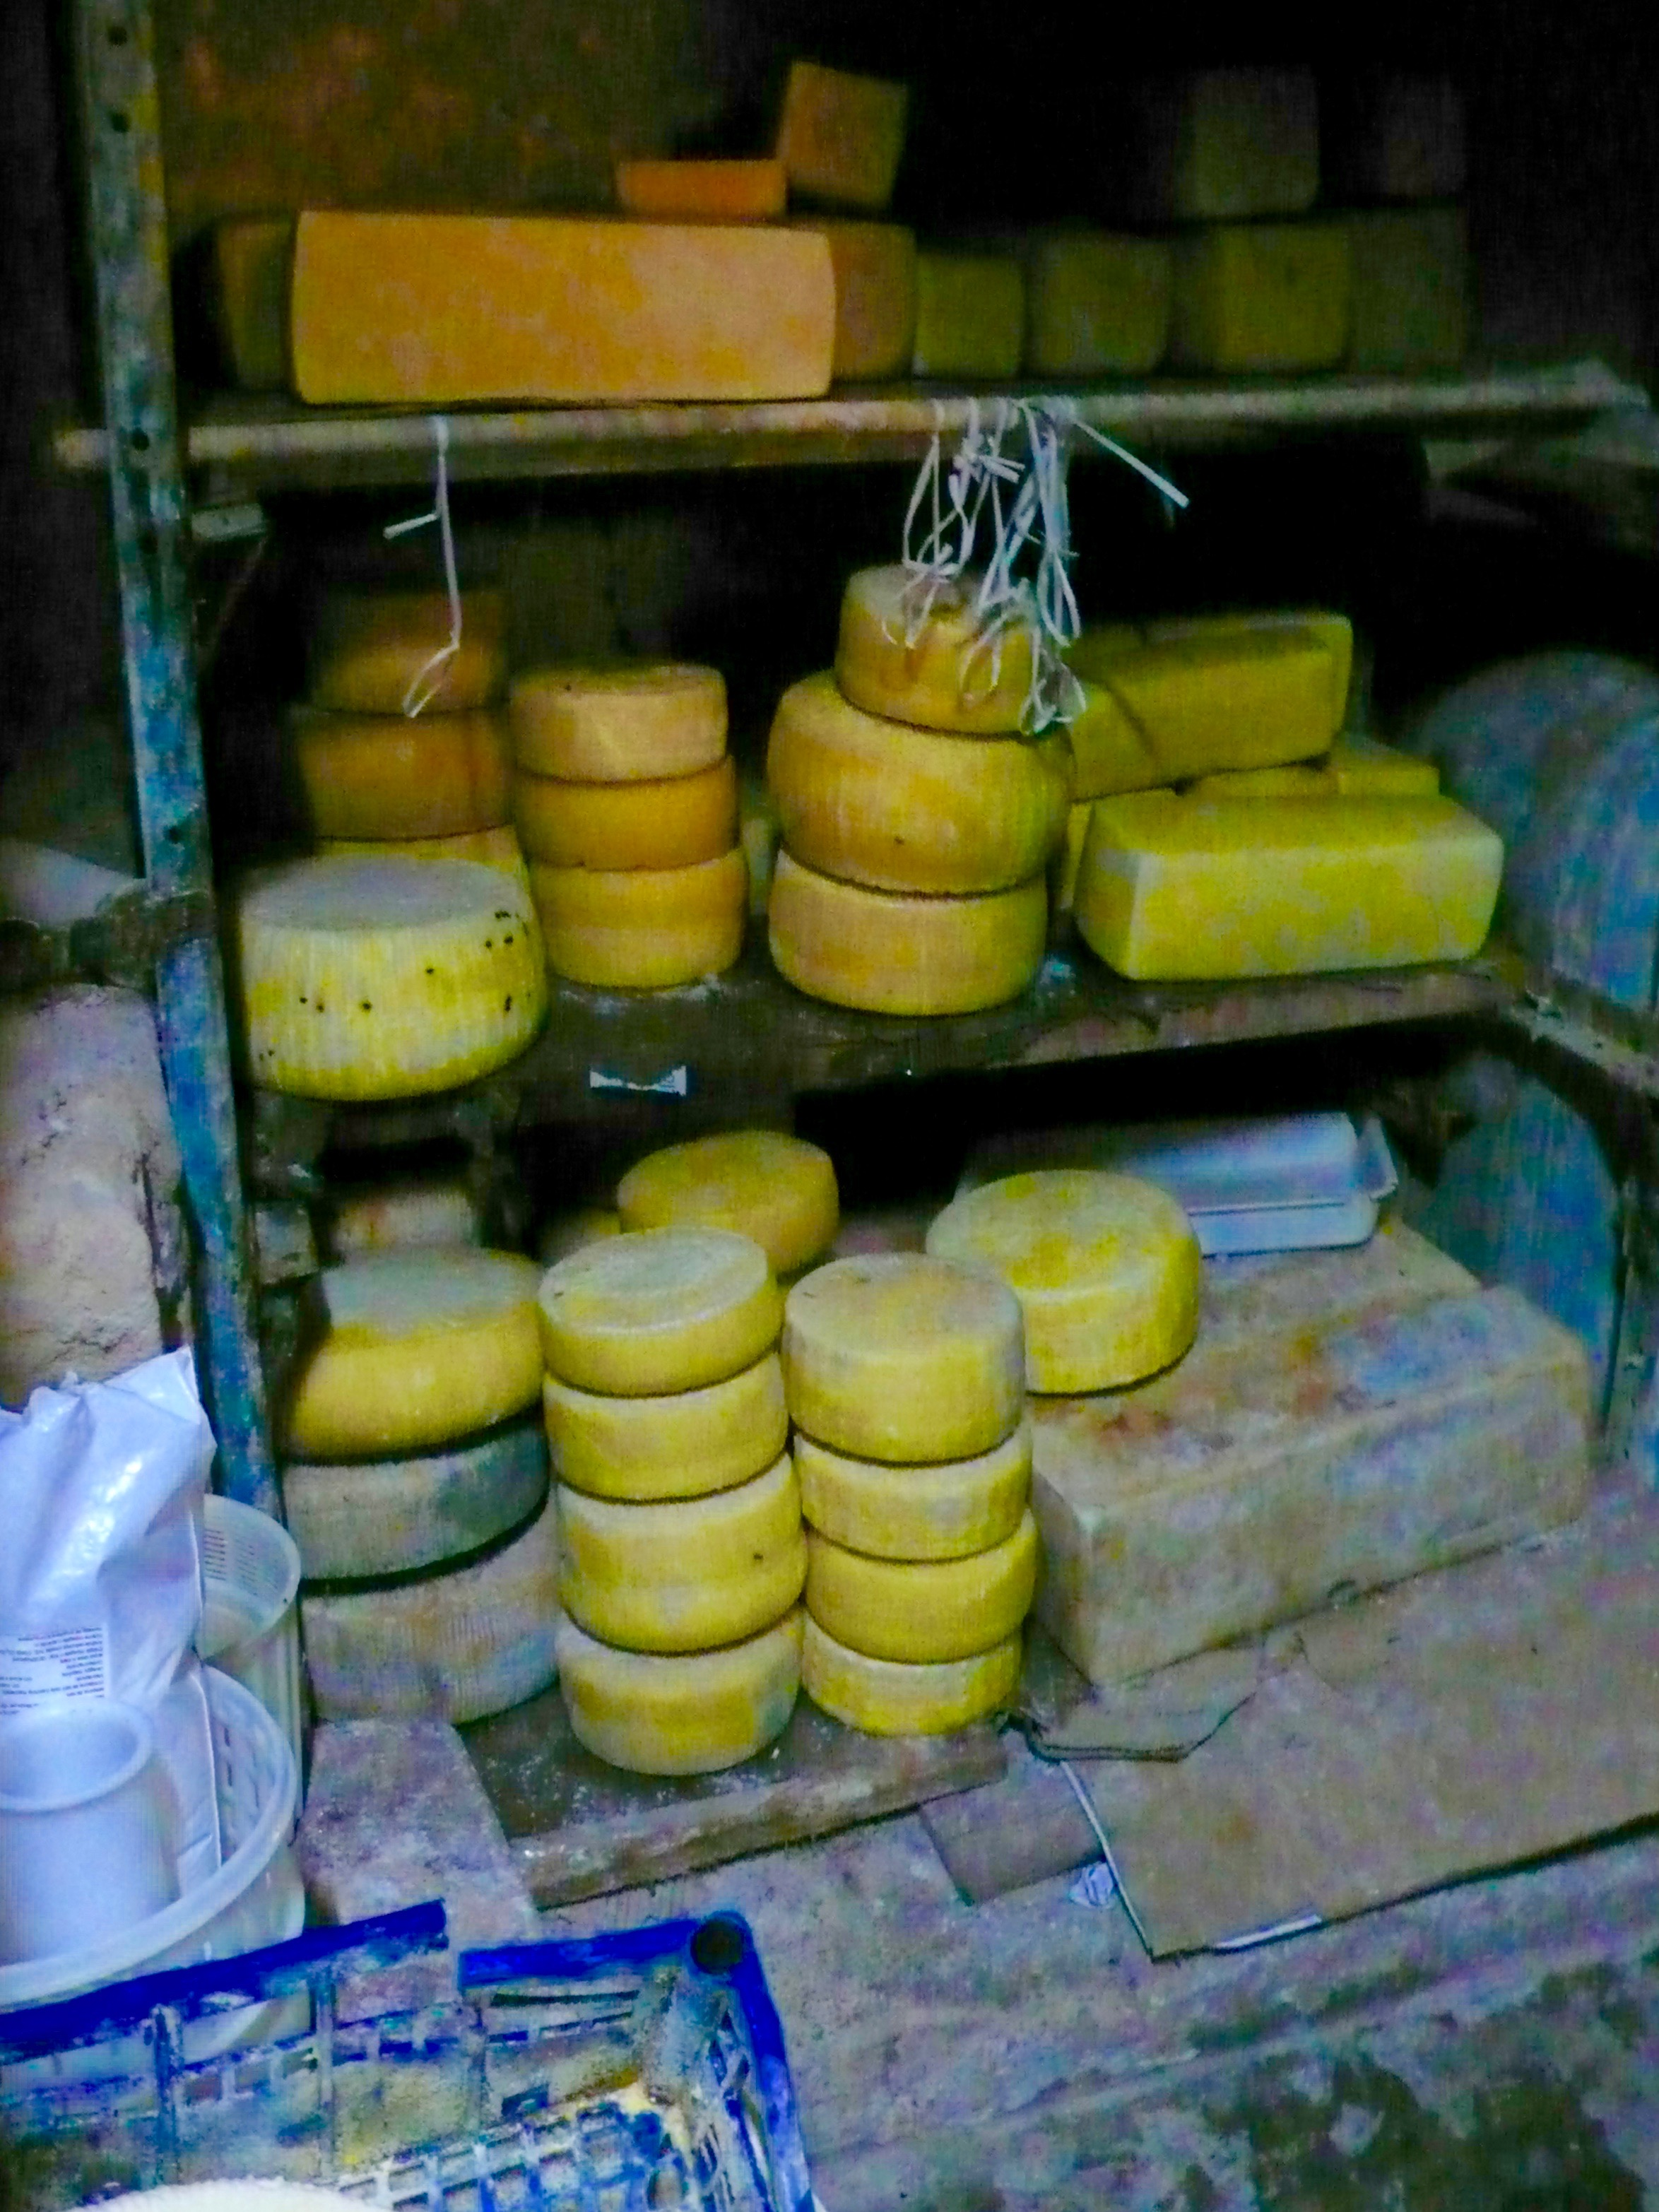 Maria makes all this cheese and it is later sold at local grocery stores to to private clients who come to the house.